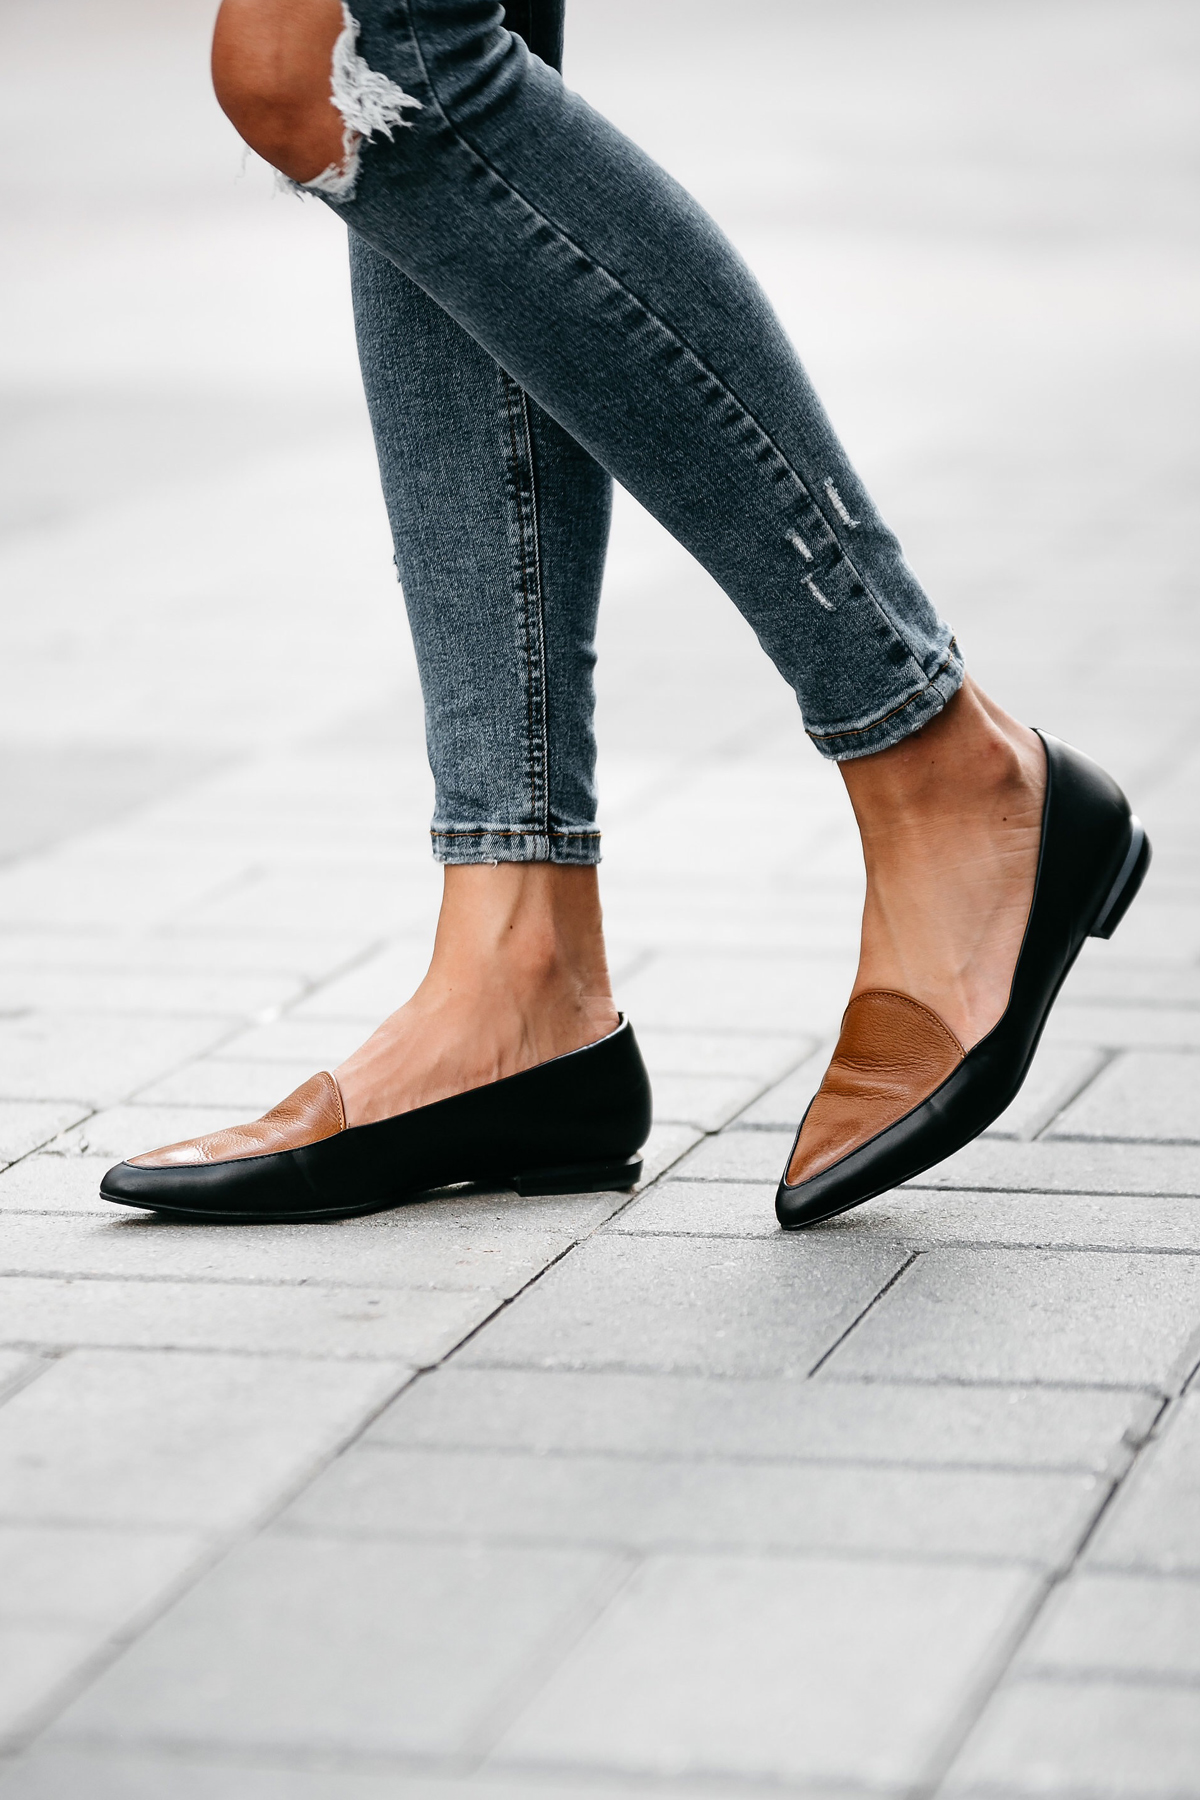 Everlane Black Tan Loafers Fashion Jackson Dallas Blogger Fashion Blogger Street Style